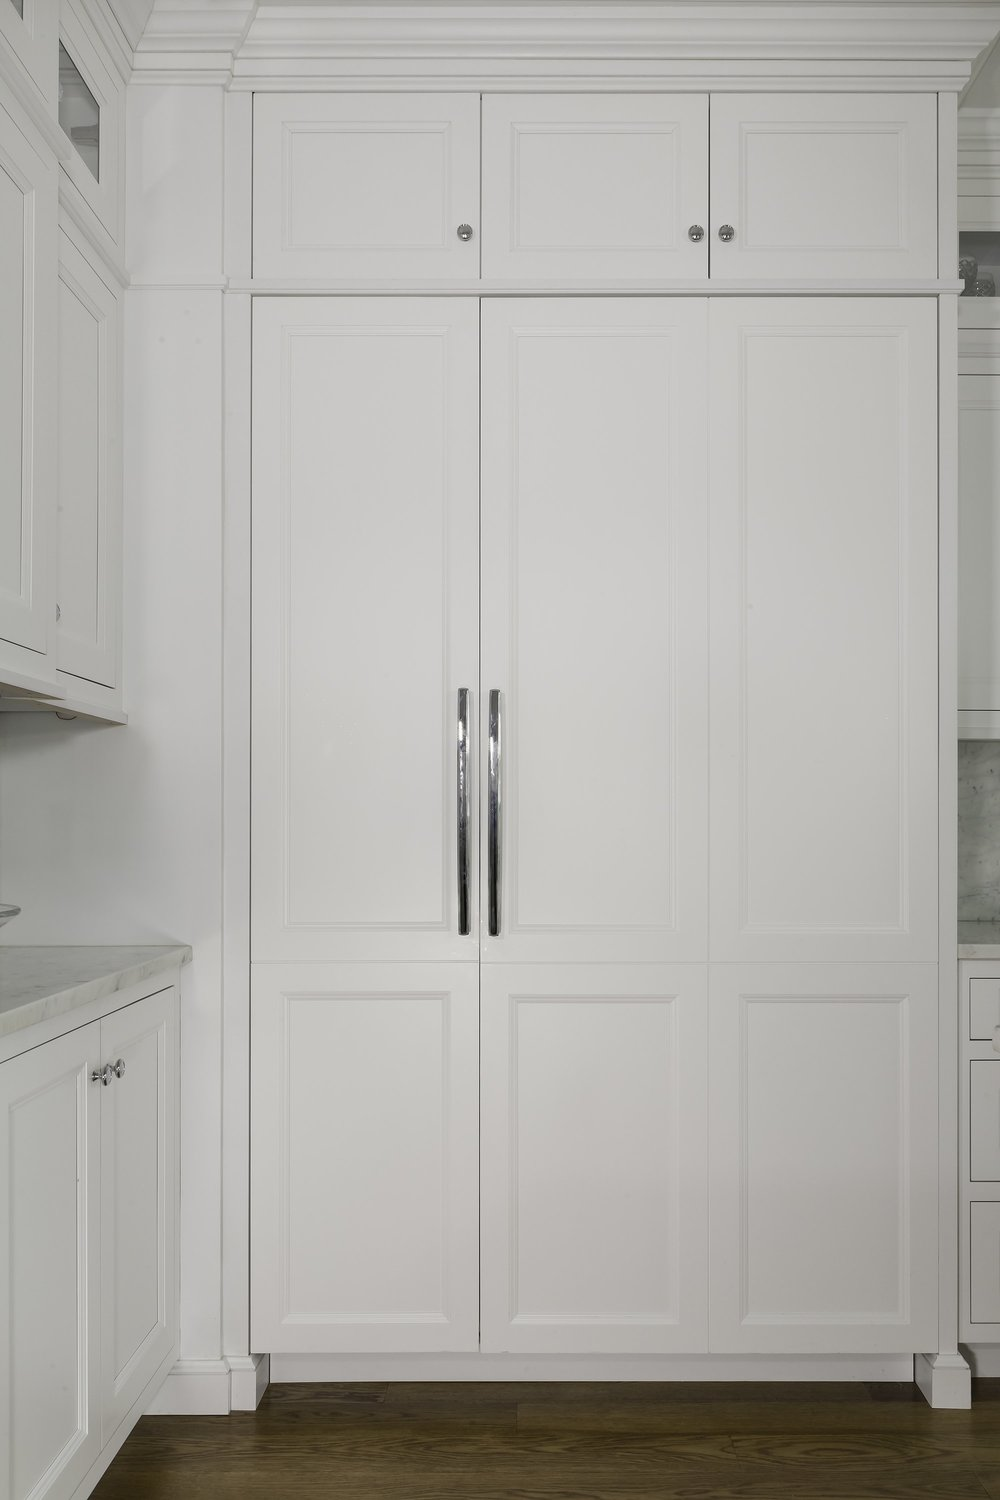 Transitional style kitchen with large white cabinet